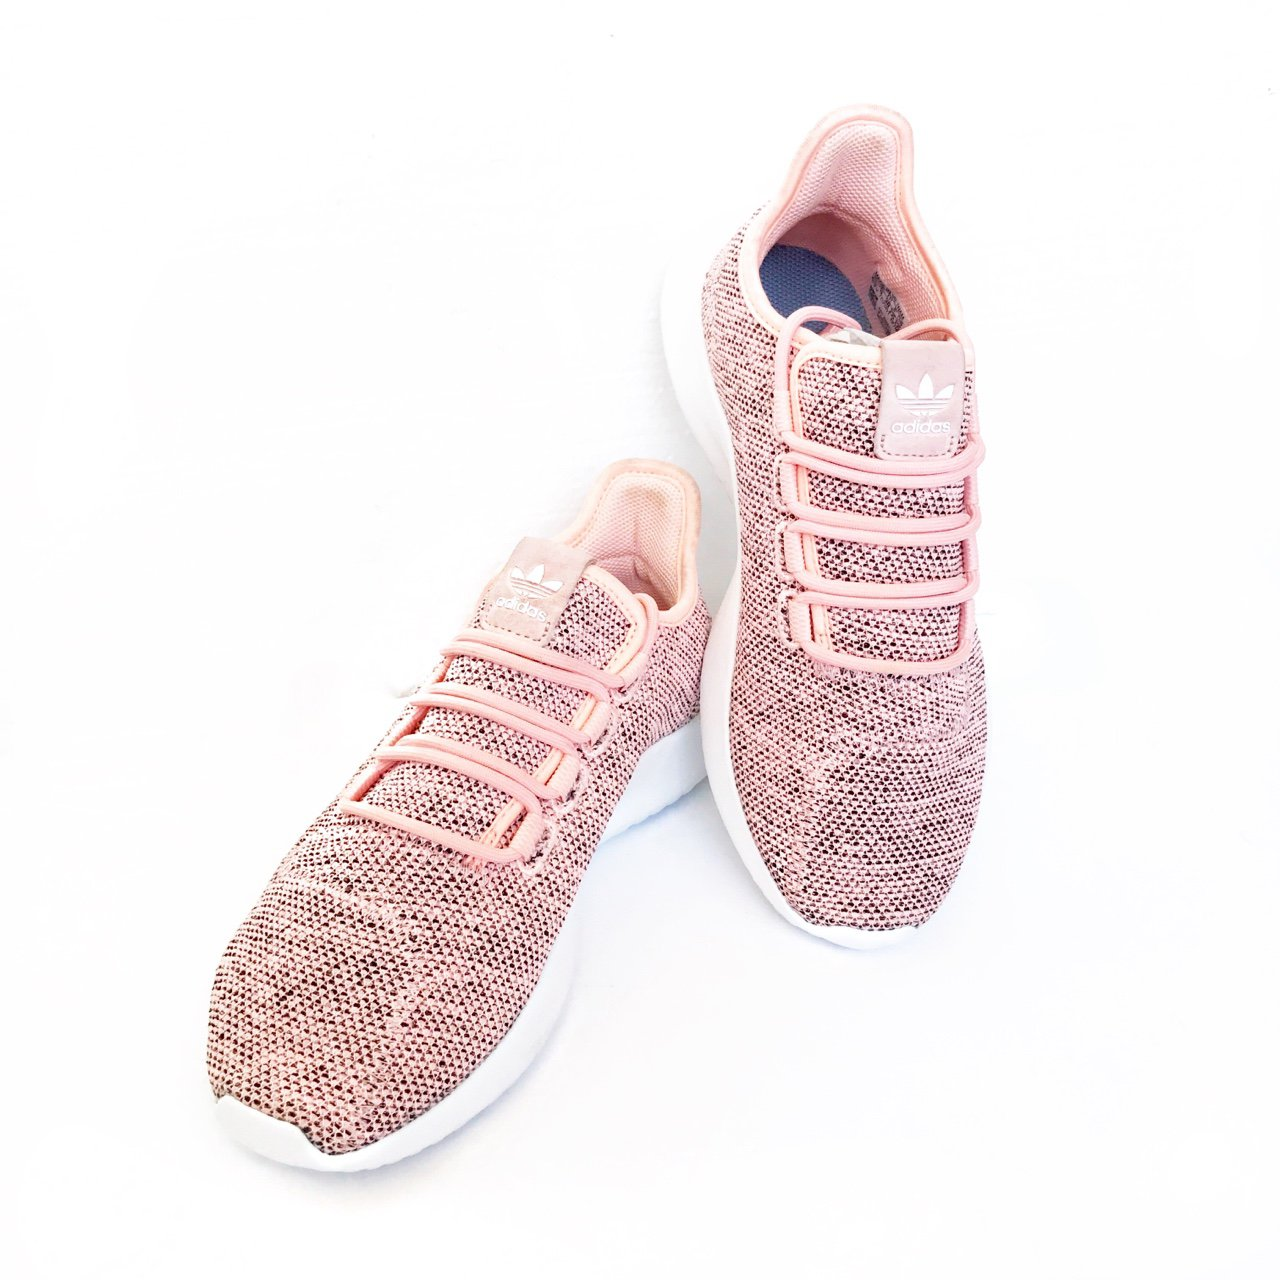 Baby pink Adidas Tubular Shadow athletic shoes🌸 Women s the - Depop a7af2b83a0